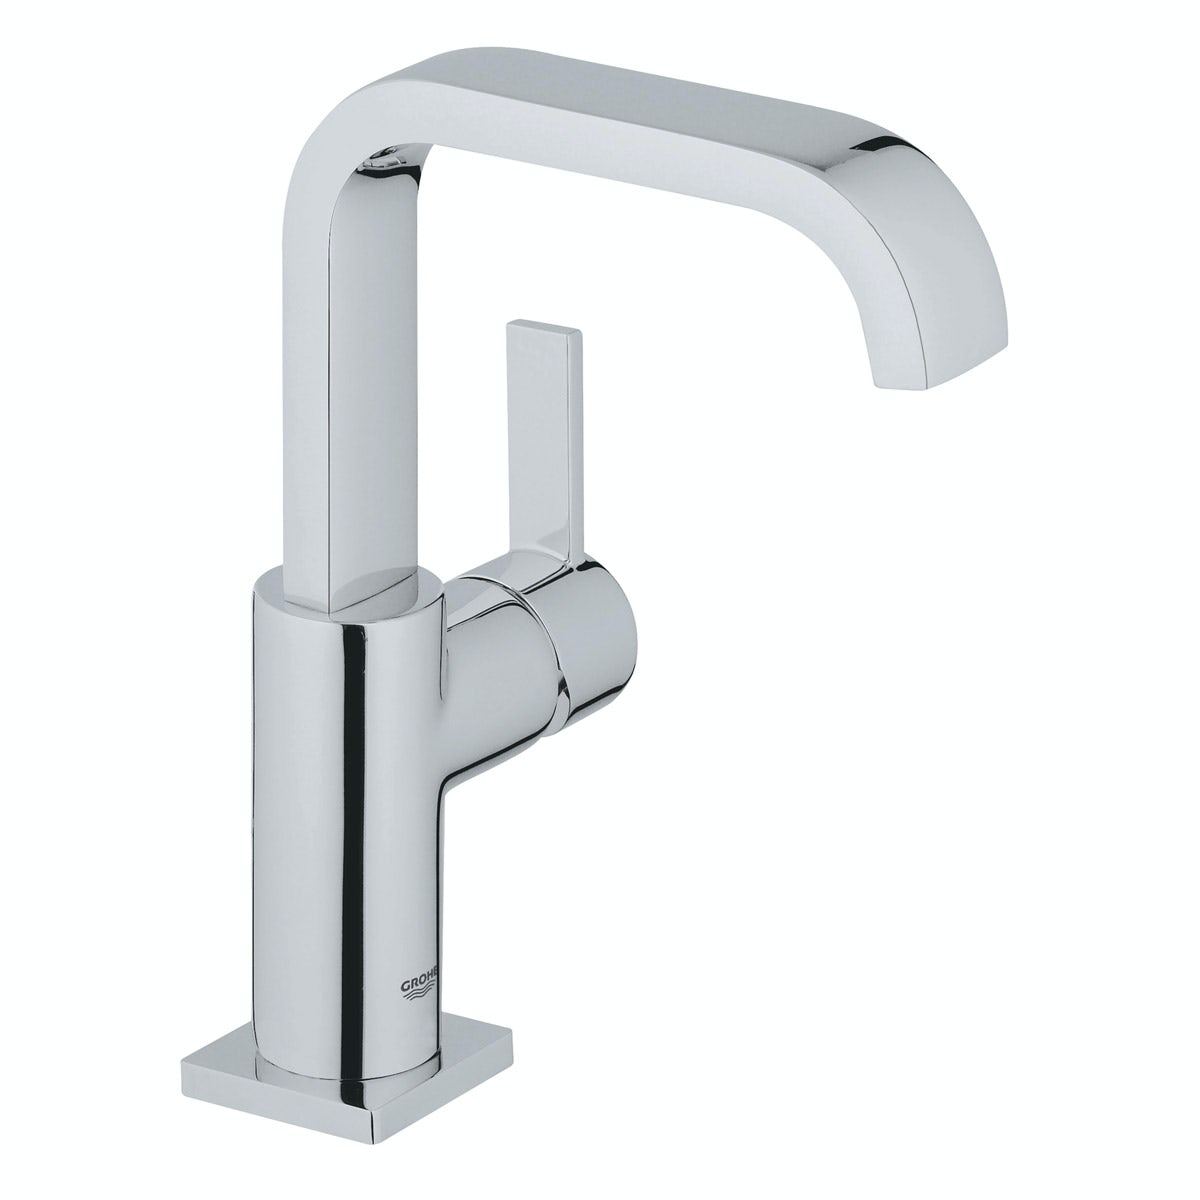 Grohe Allure L-size basin mixer tap